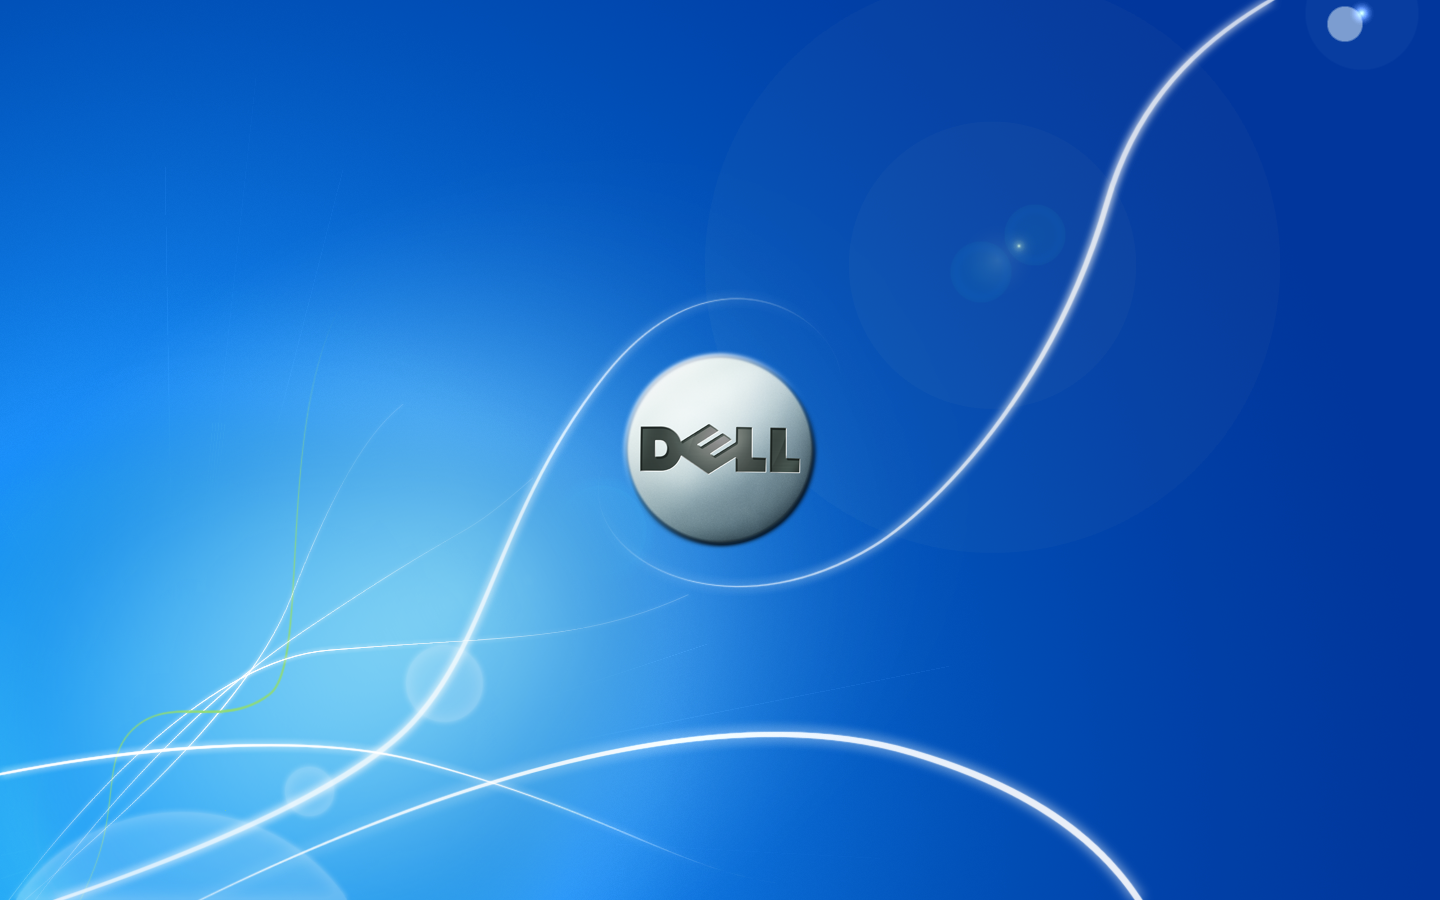 Dell launches its UK Centre for Entrepreneurs and a £10m fund